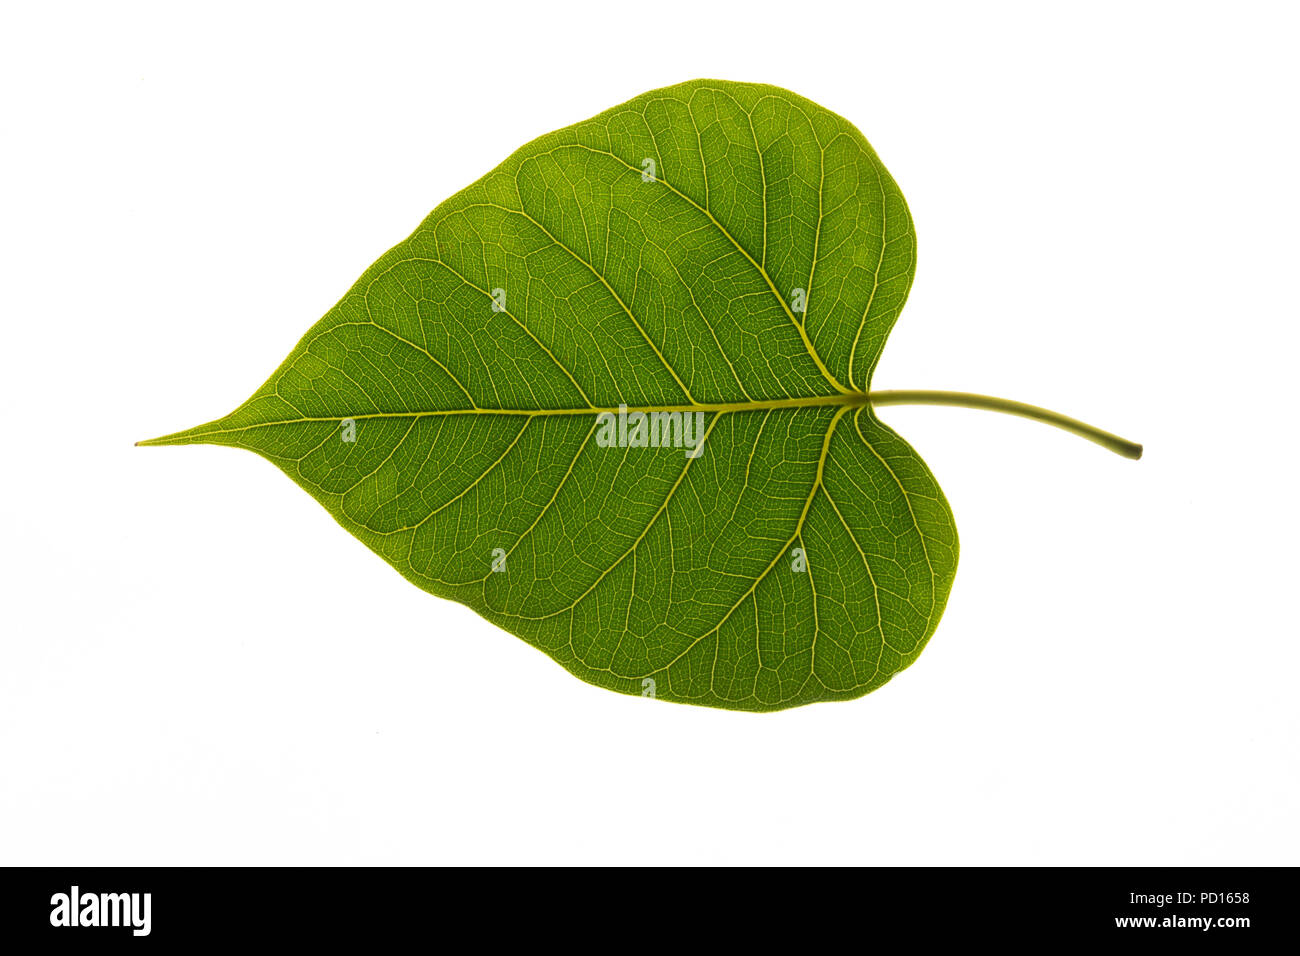 Texture of a bodhi leaves on a white background. Stock Photo